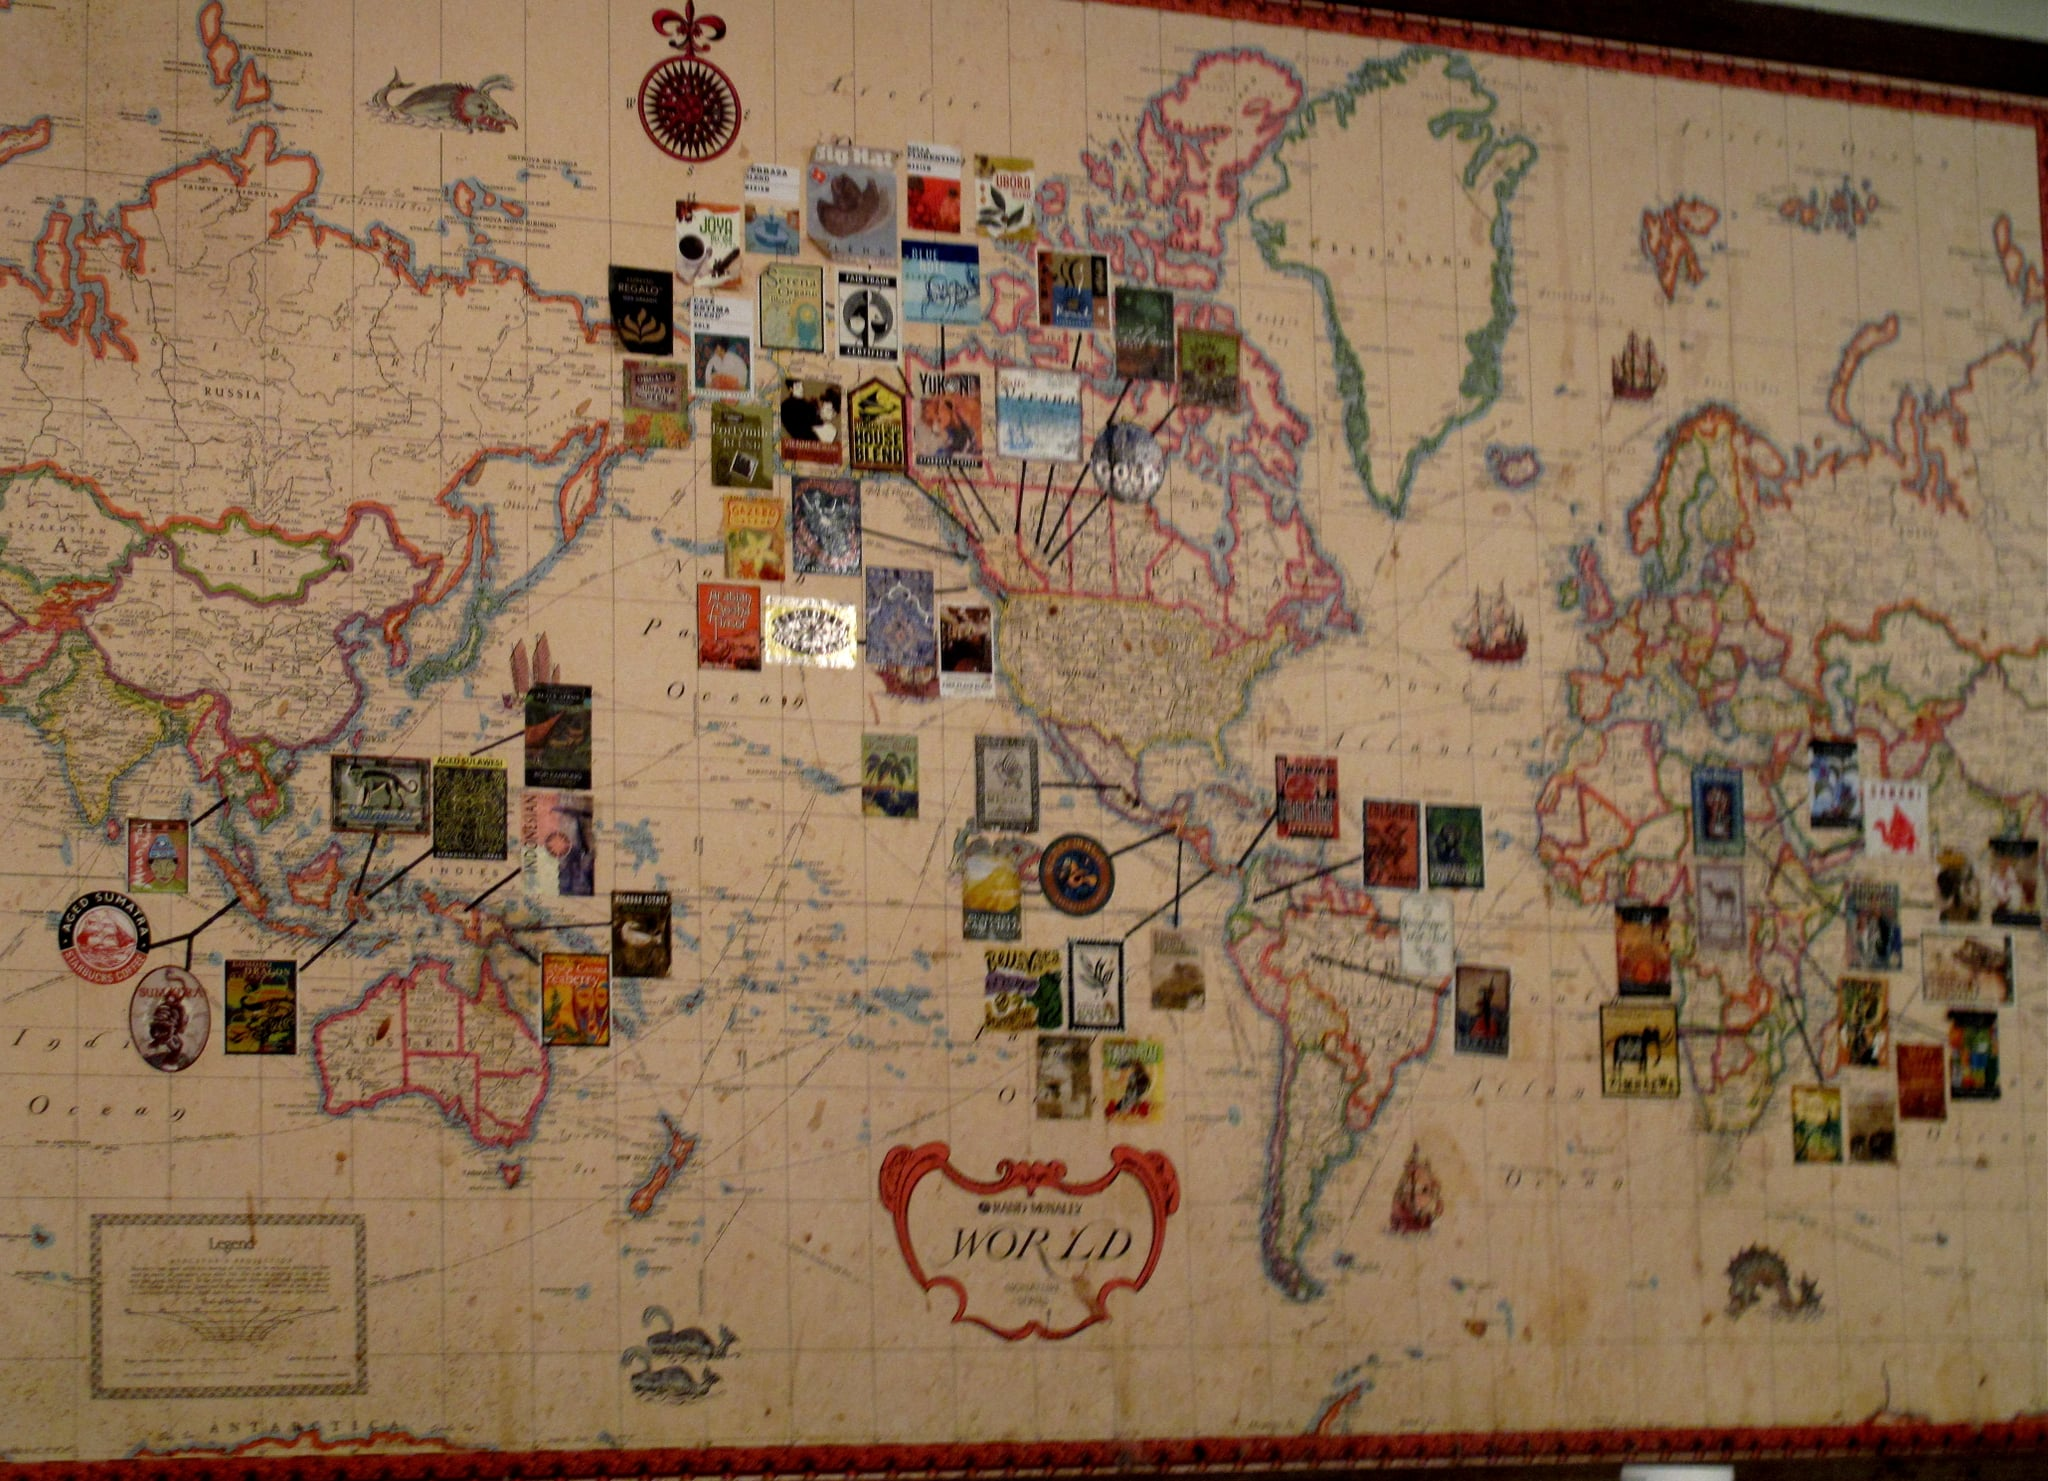 A map of the world shows all the various types of coffees across the globe that are roasted by Starbucks.</p> <p>